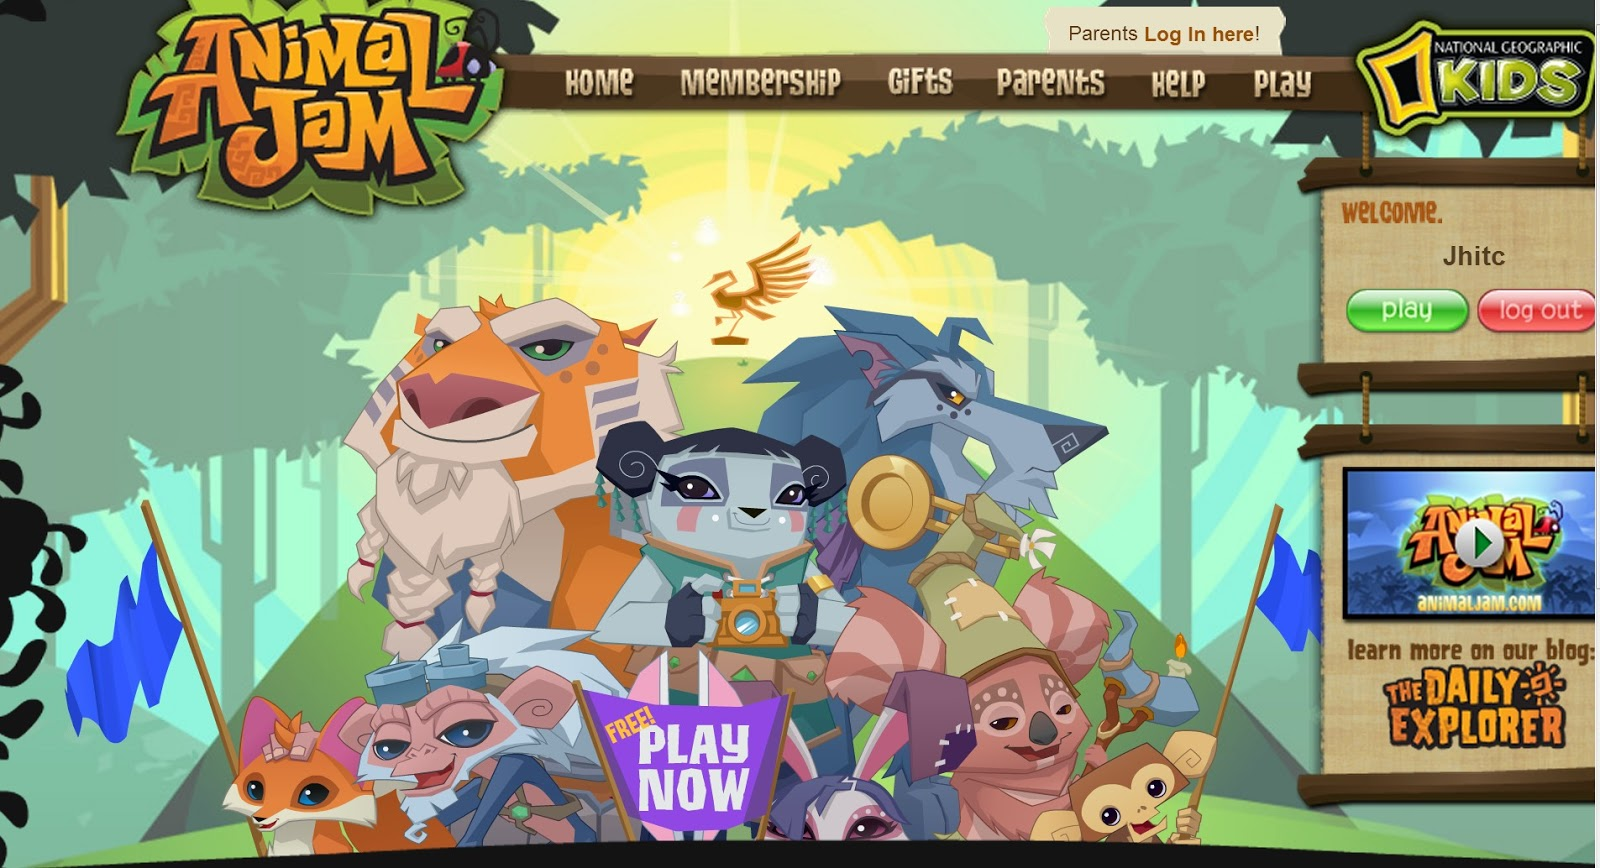 Hey people, now when you log on to animal jam. You will see this thing